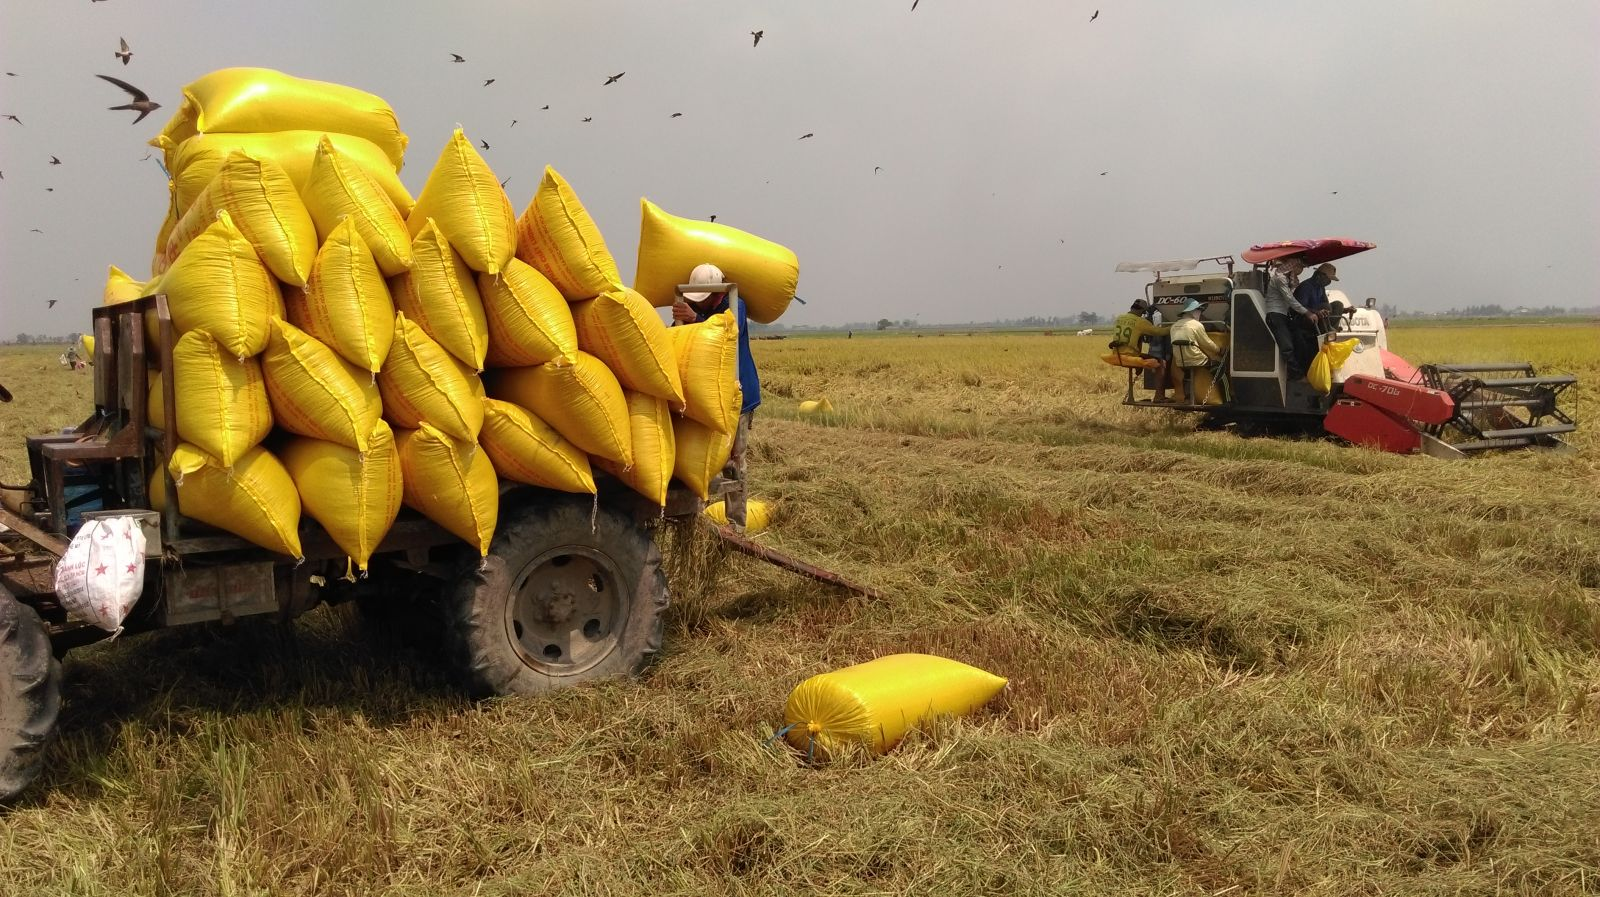 The consumption of agricultural products still faces many difficulties